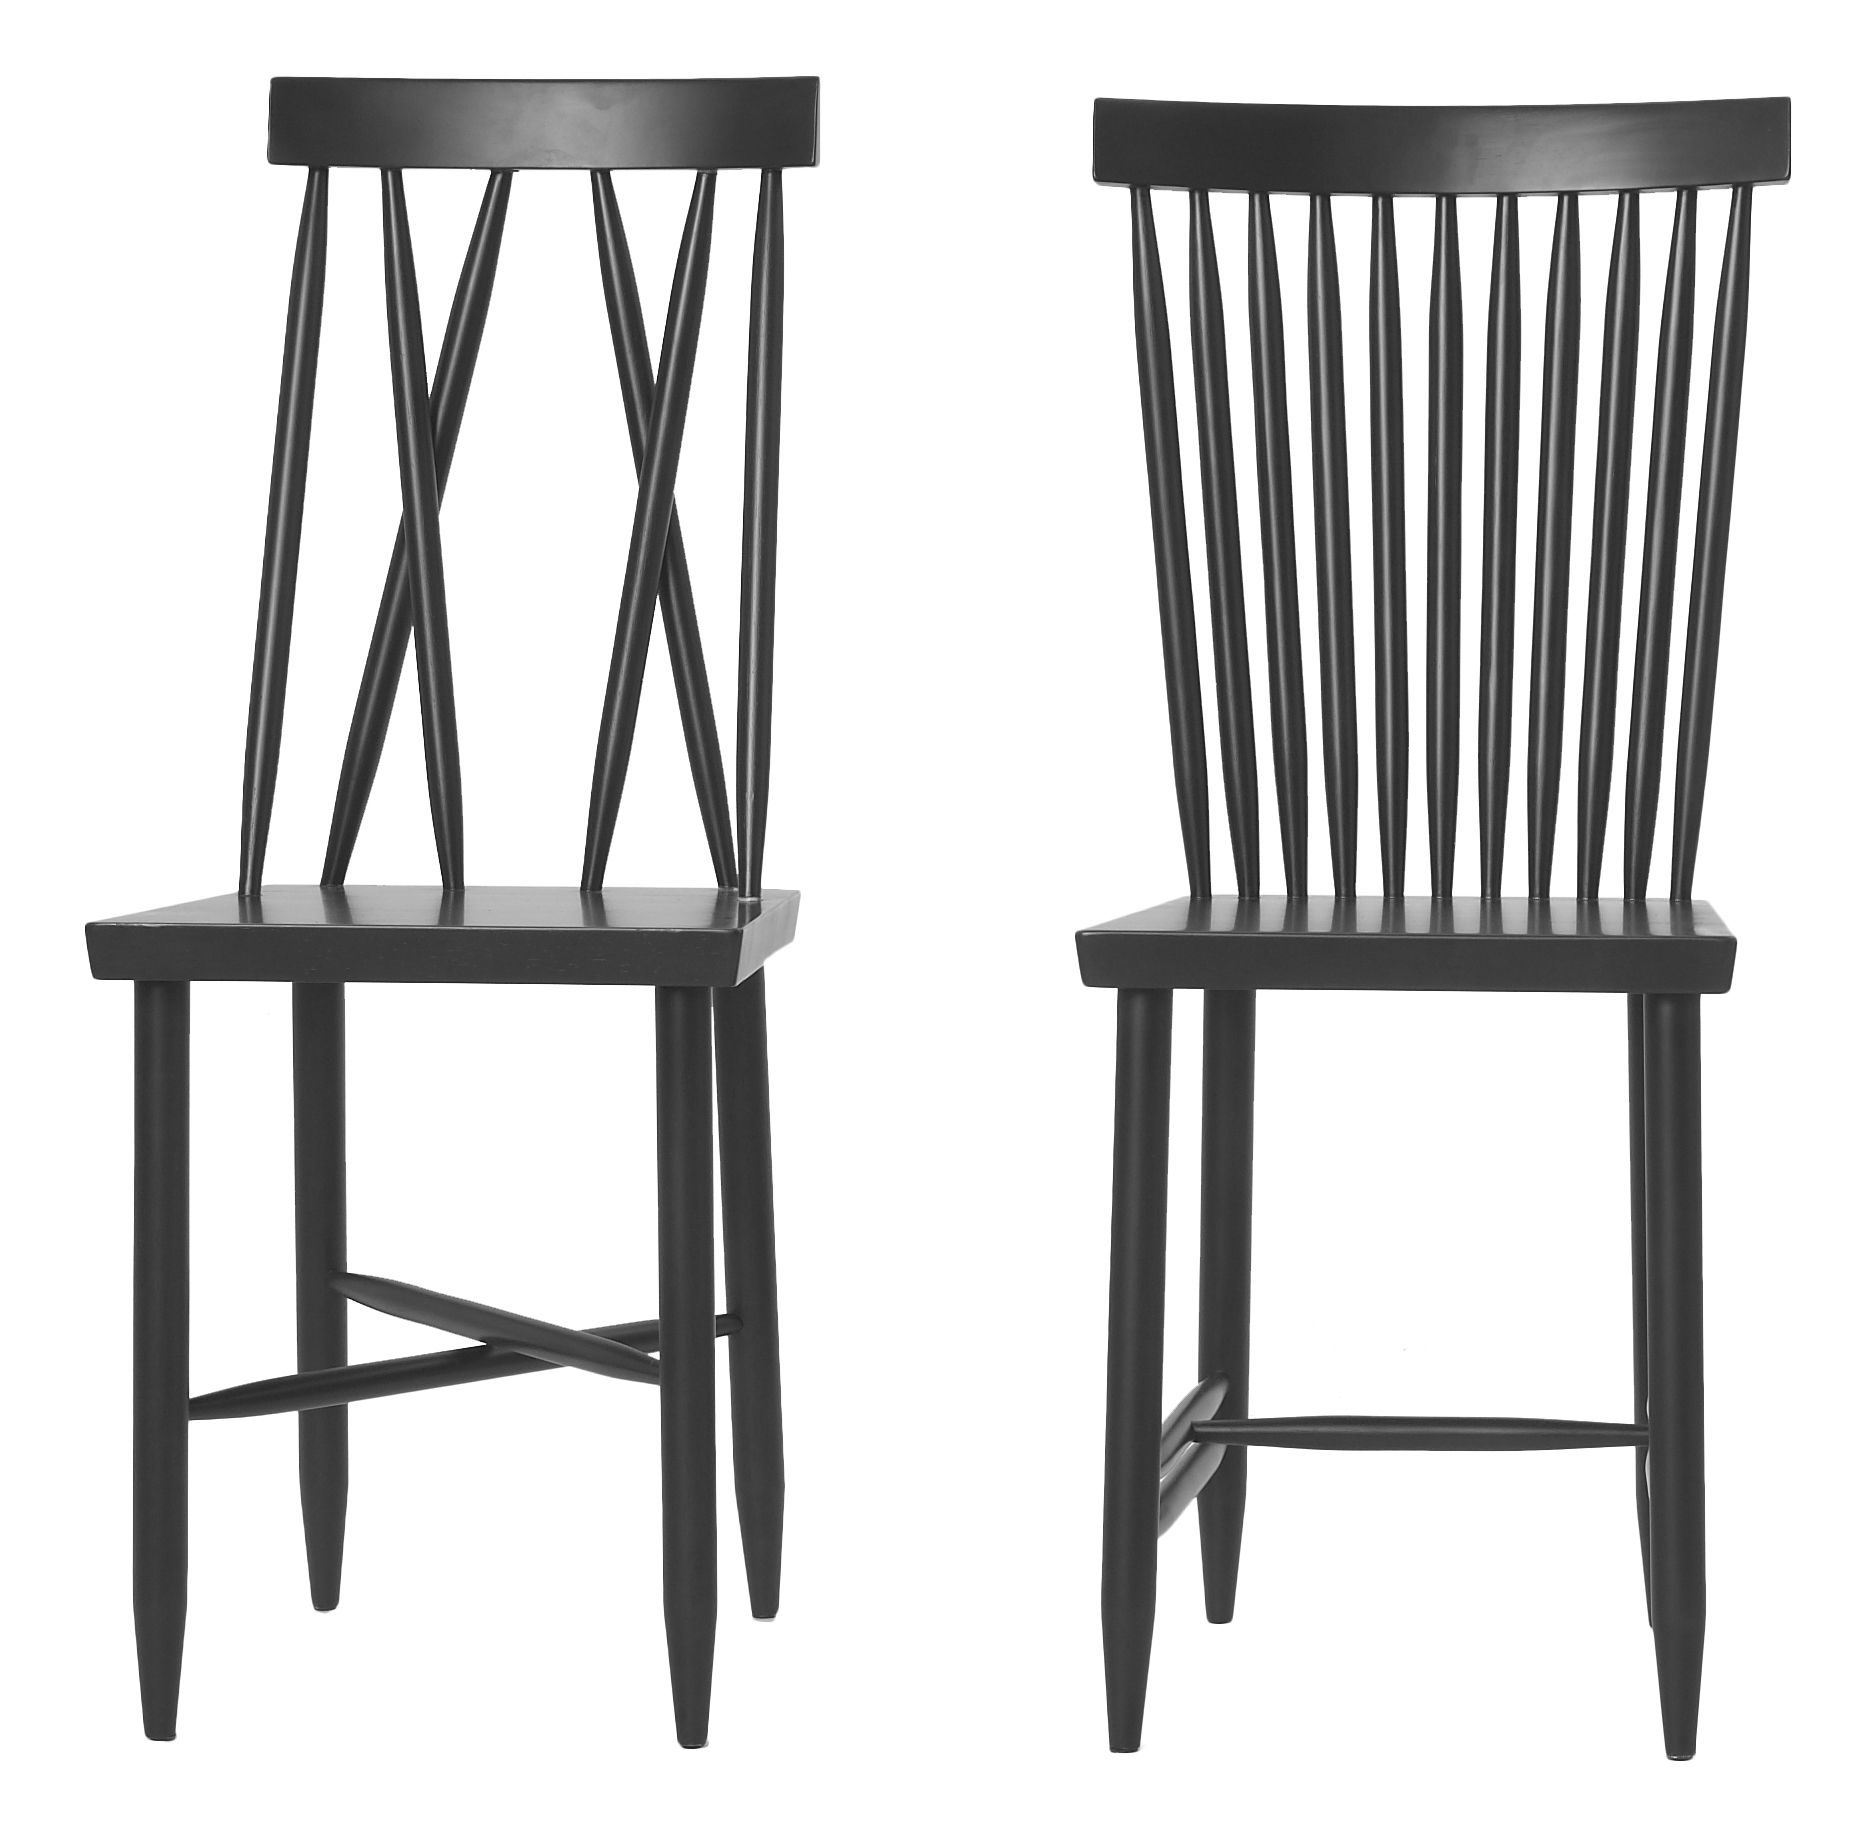 Family Chairs N°1 & N°2 Chair